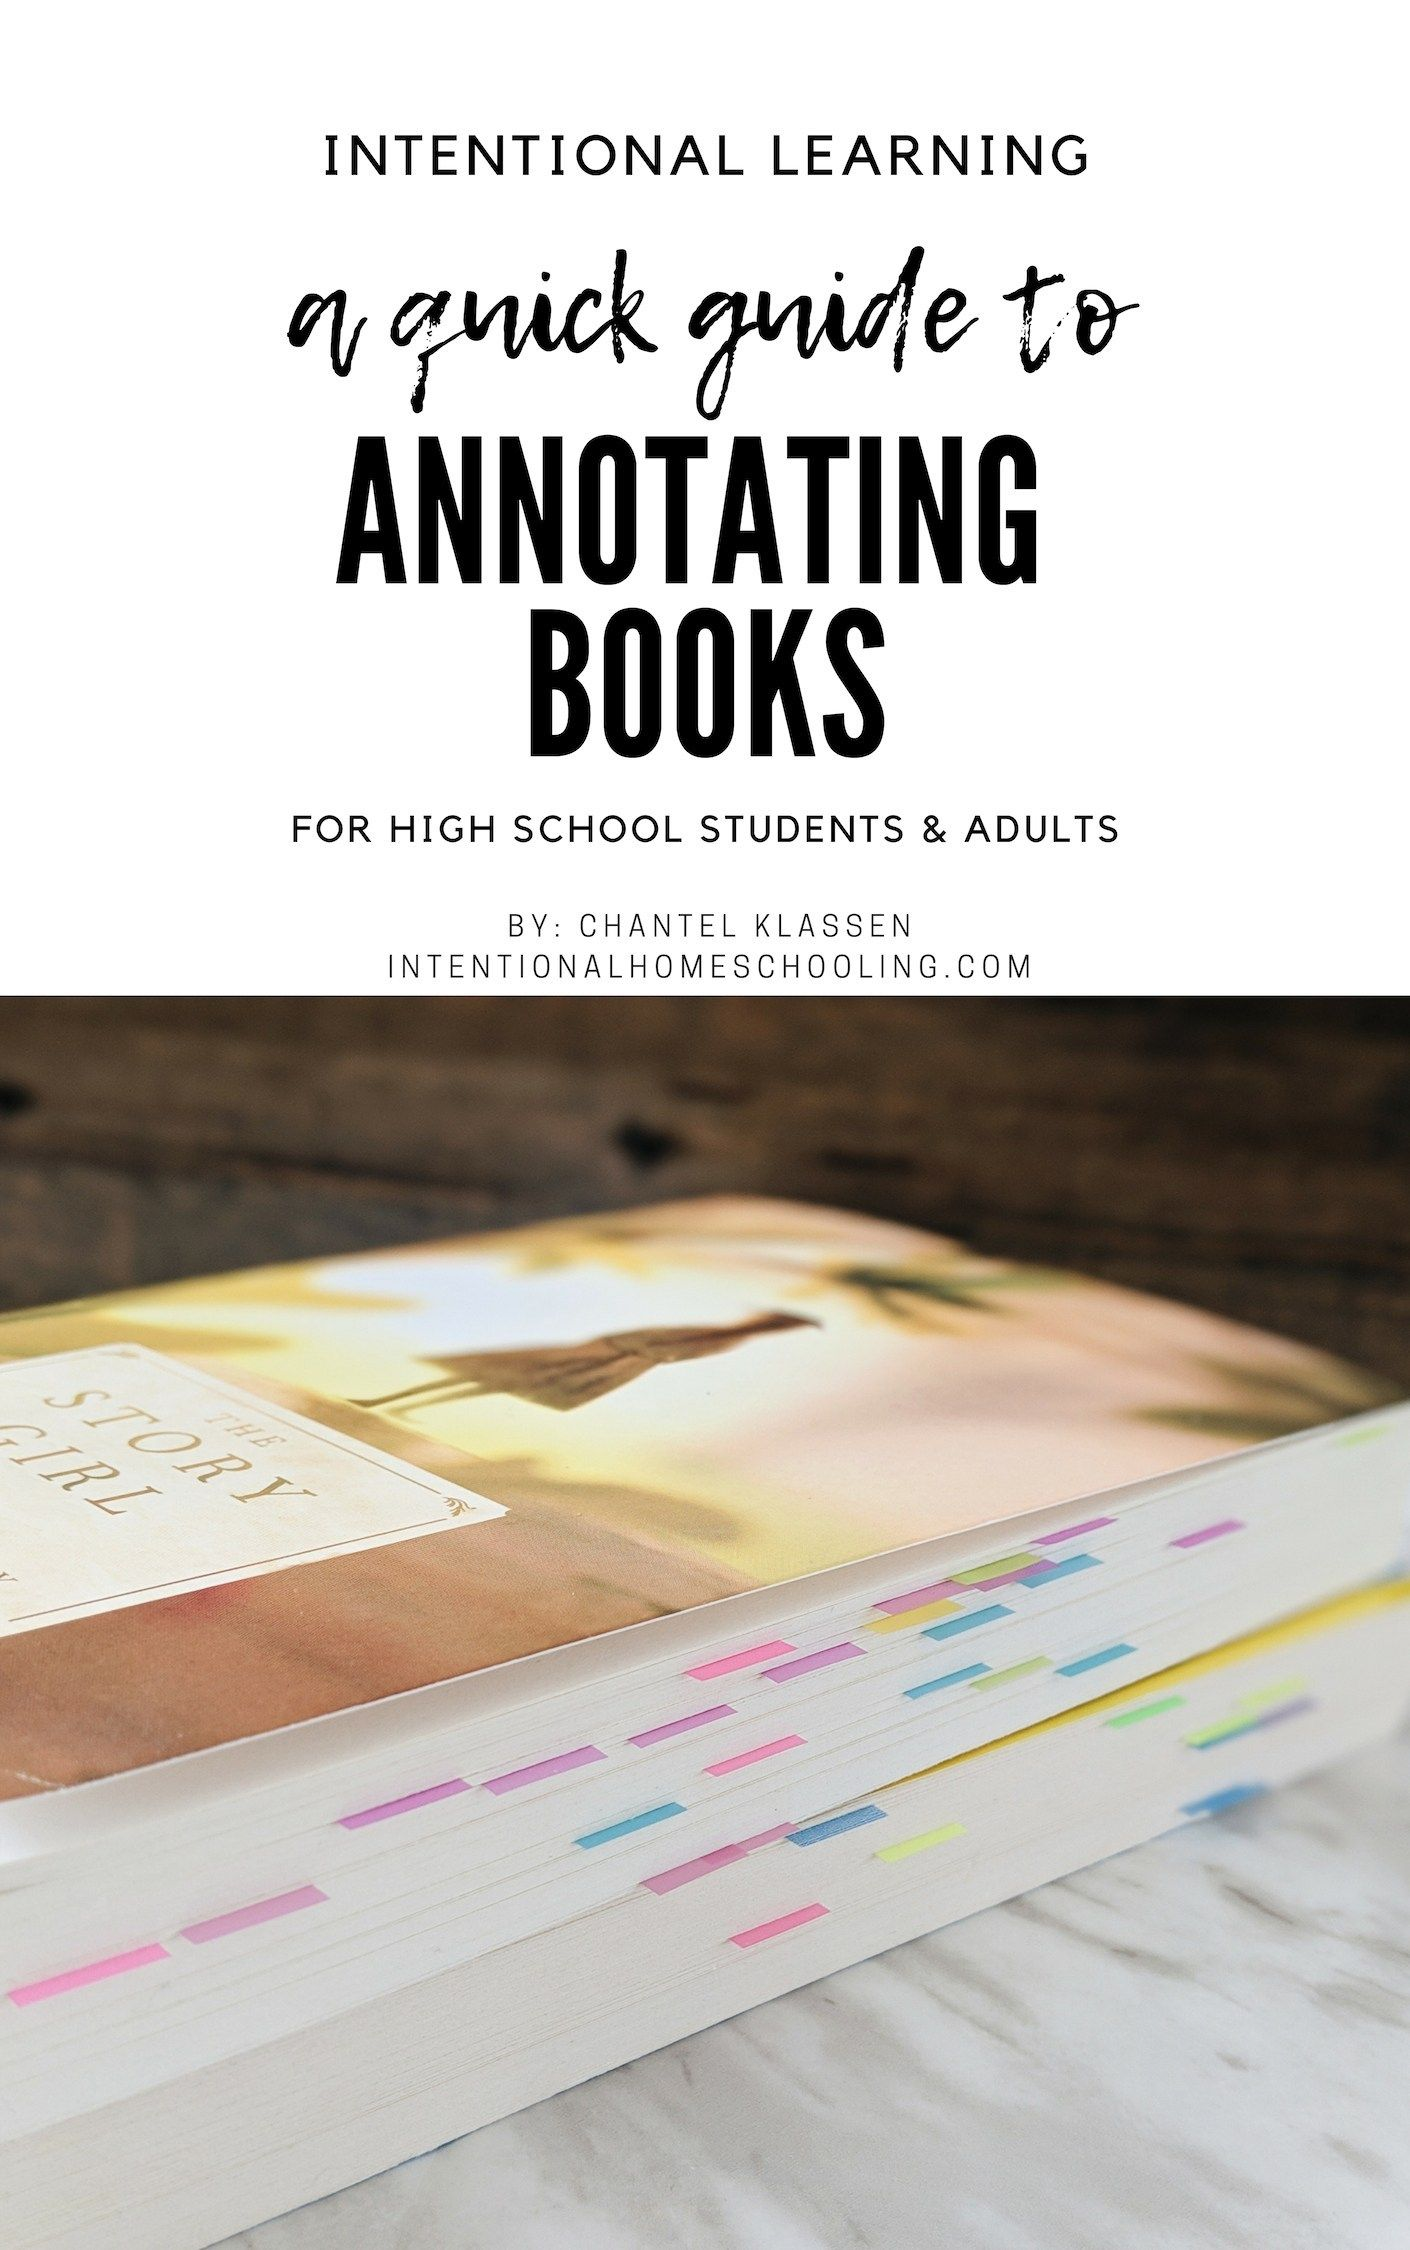 A quick guide to annotating books school stress high